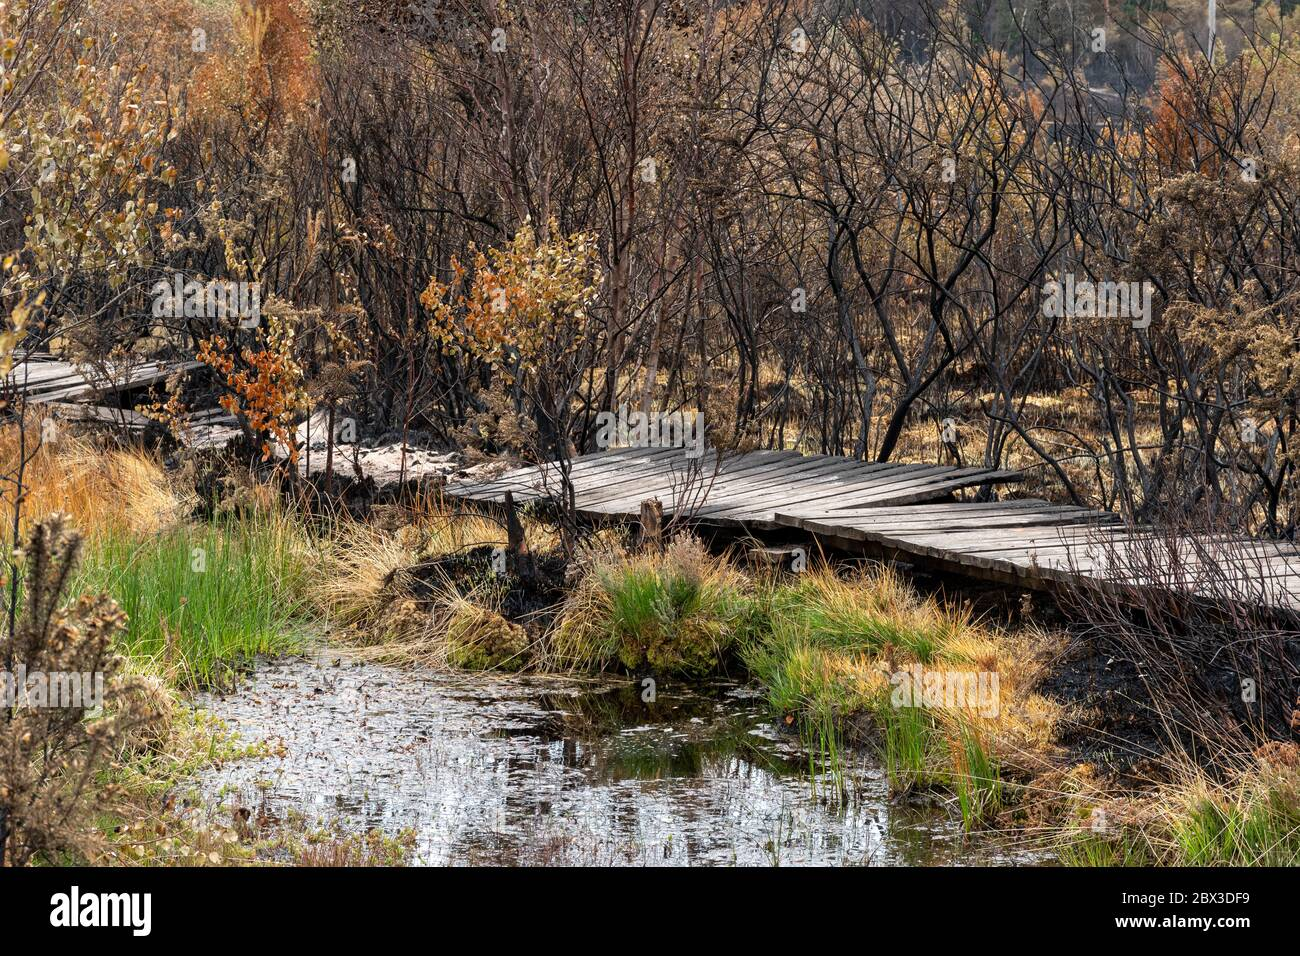 june-4th-2020-aftermath-of-a-large-wildfire-at-thursley-common-national-nature-reserve-in-surrey-uk-the-fire-which-started-on-may-30th-2020-has-devastated-about-150-hectares-of-heathland-an-important-habitat-for-many-wildlife-species-such-as-rare-reptiles-and-heathland-birds-the-boardwalk-through-the-wetter-areas-of-the-reserve-has-also-been-badly-damaged-the-cause-is-not-established-but-could-have-been-due-to-careless-disposal-of-a-cigarette-or-using-a-disposable-barbecue-during-a-long-hot-dry-spell-of-weather-2BX3DF9.jpg